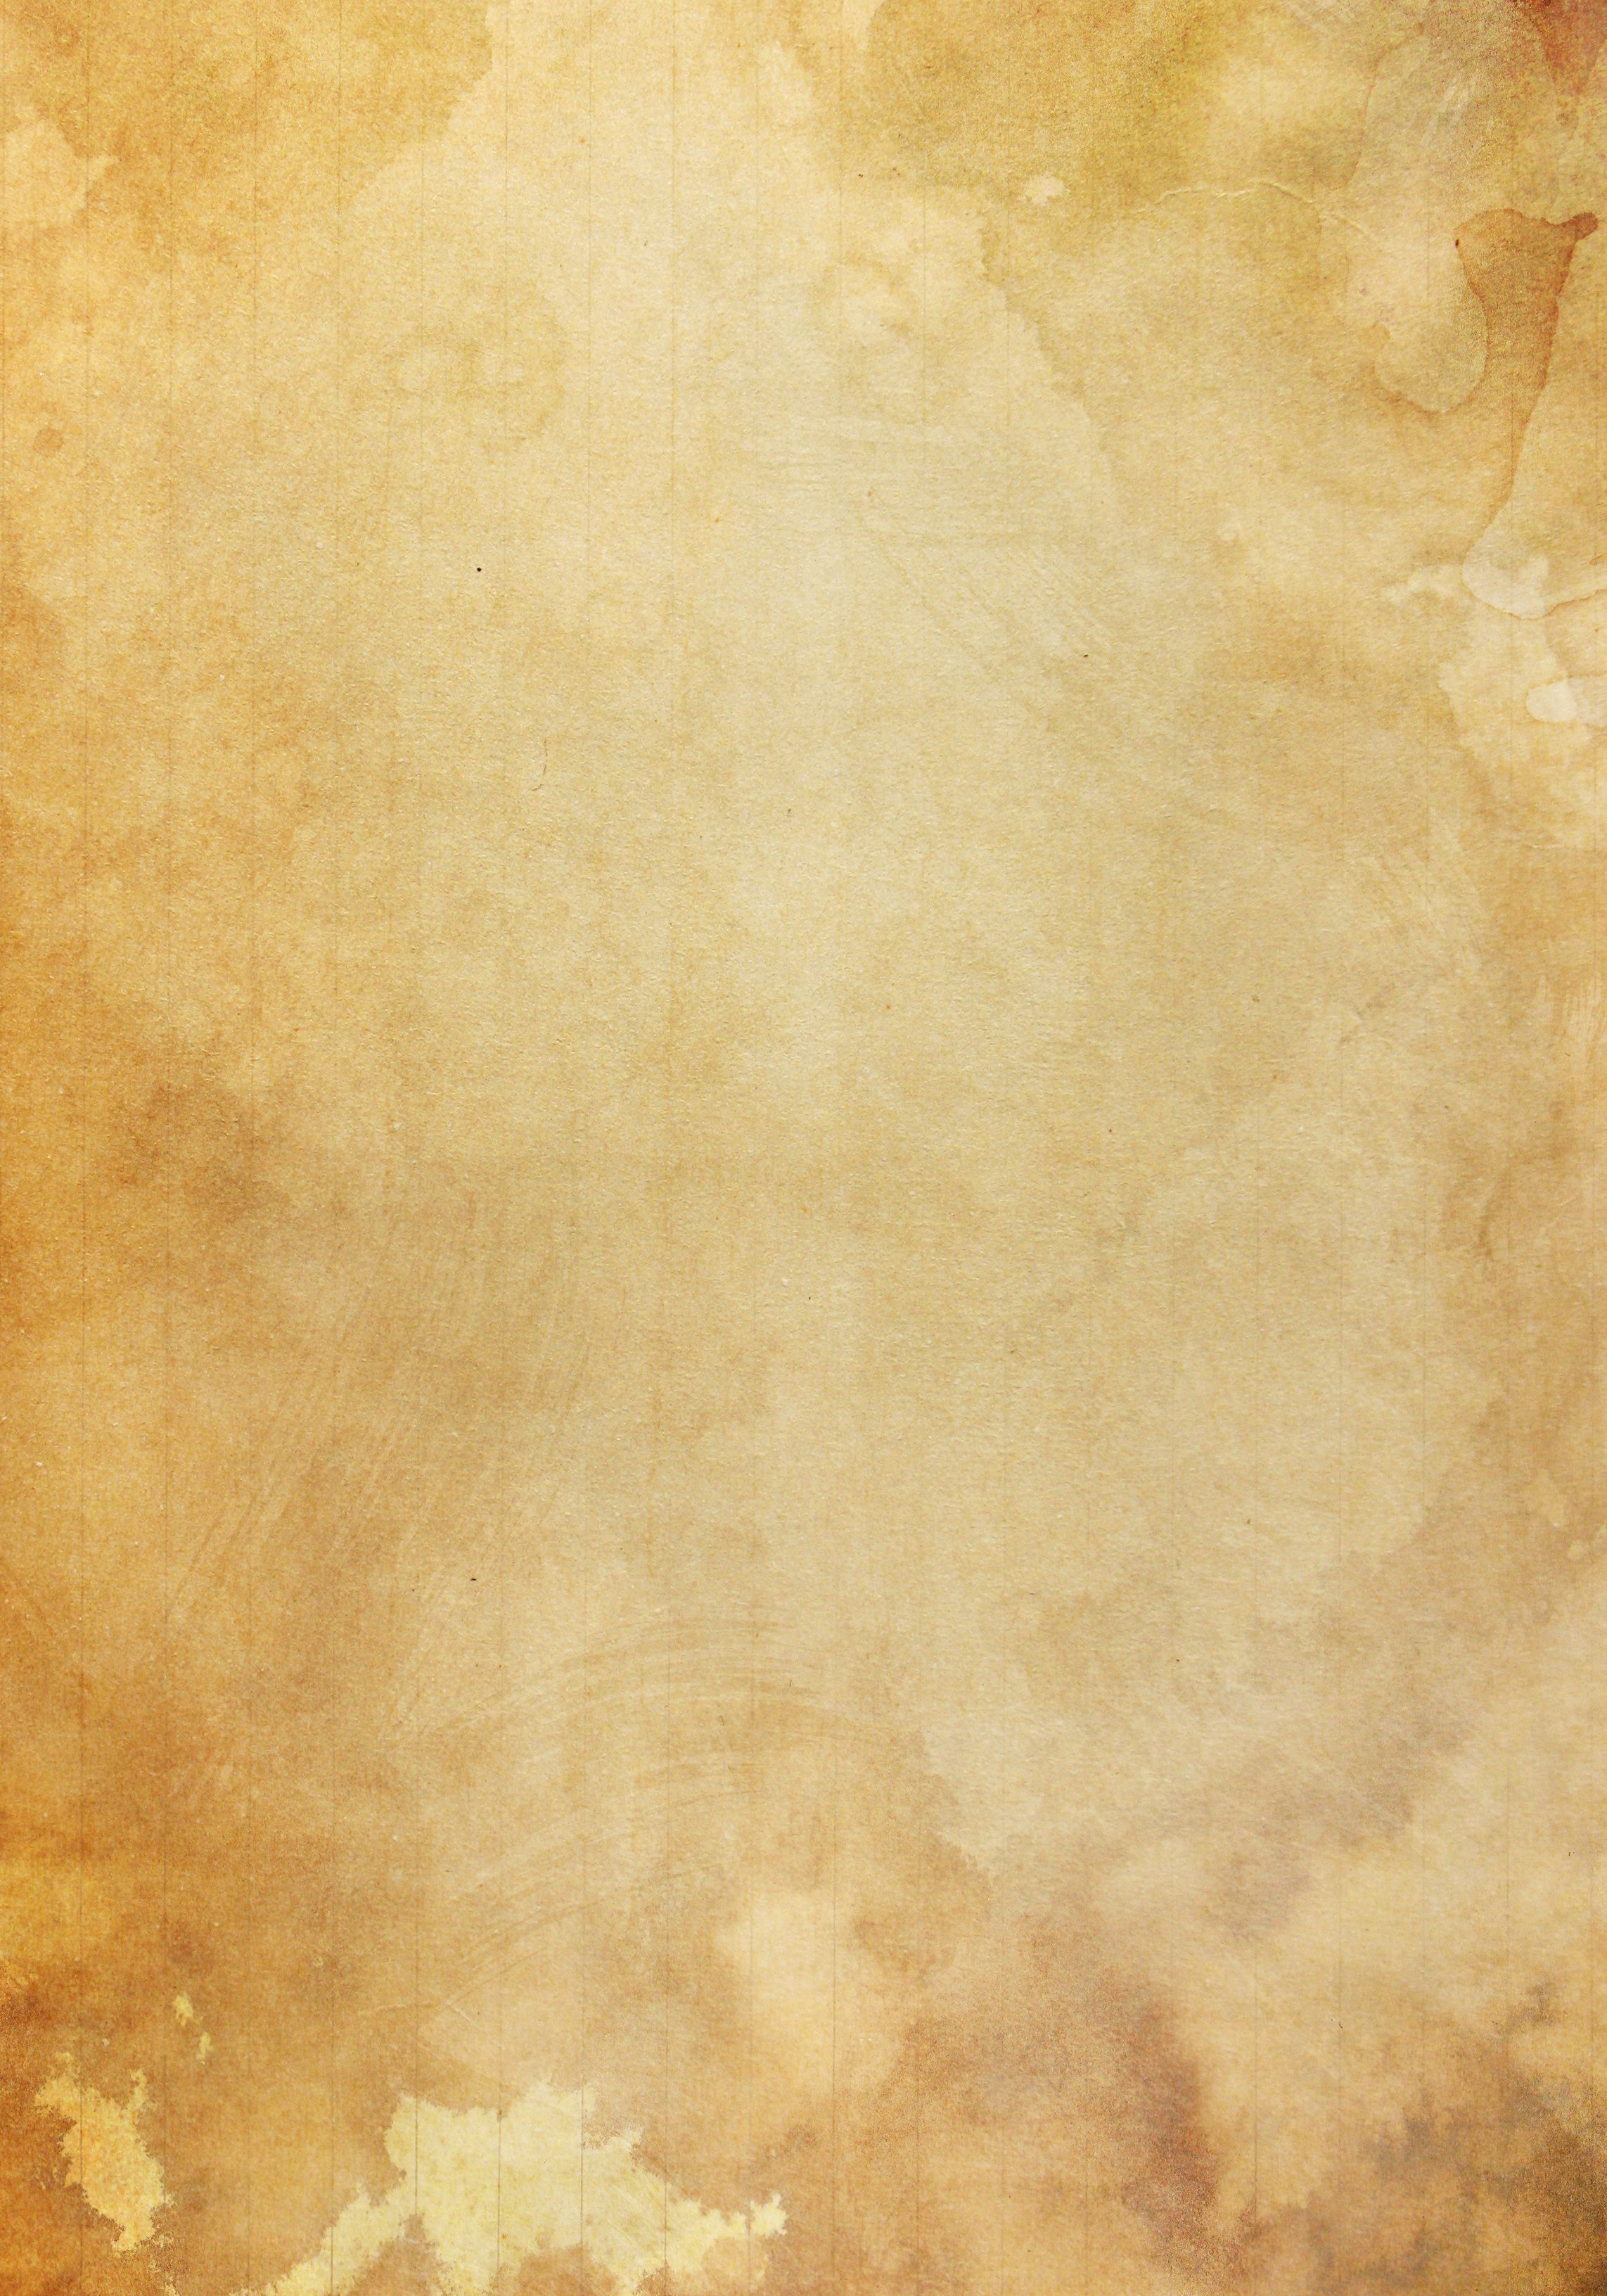 8 Re-Stained Paper Textures | Textures | Pinterest